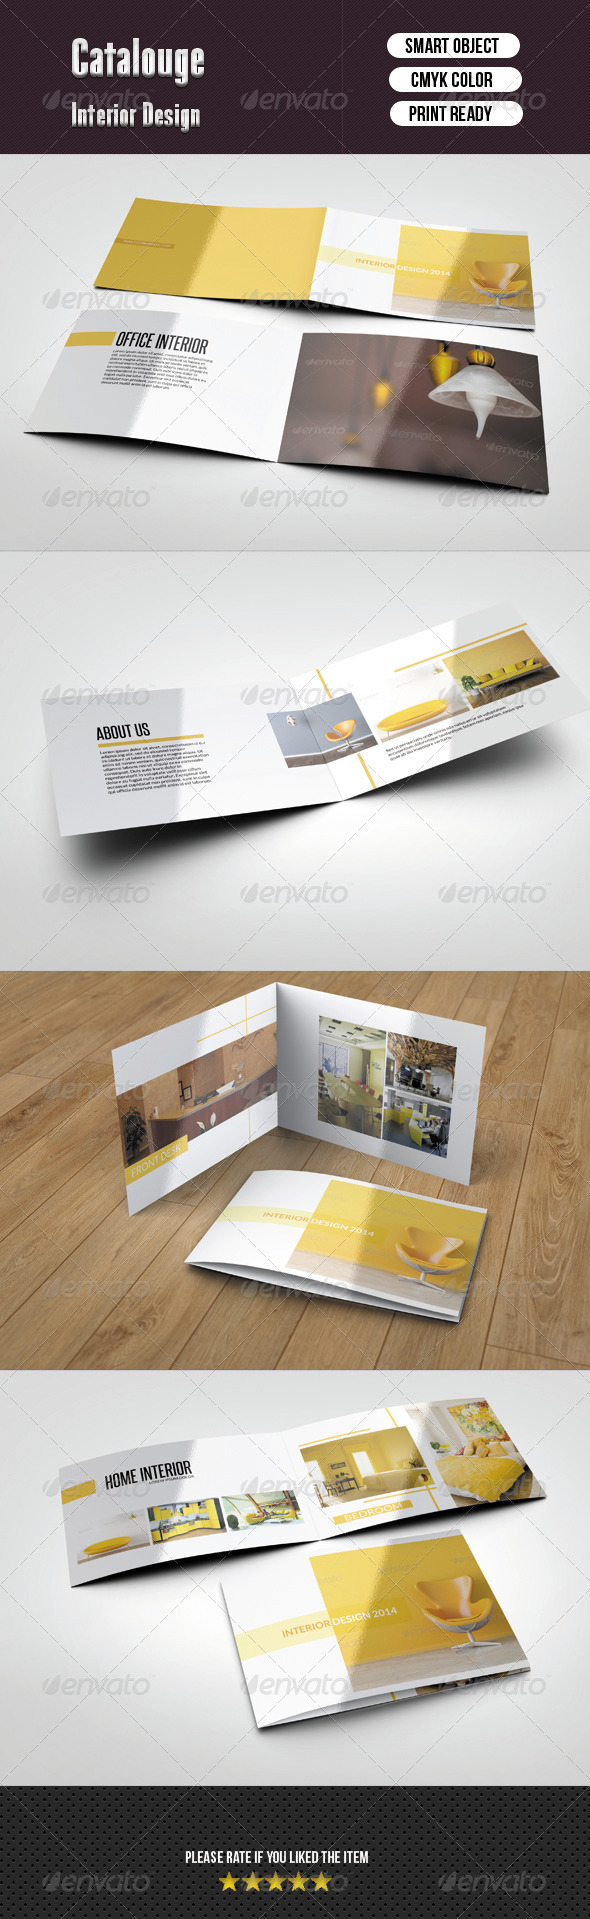 GraphicRiver Interior Catalog 6189985